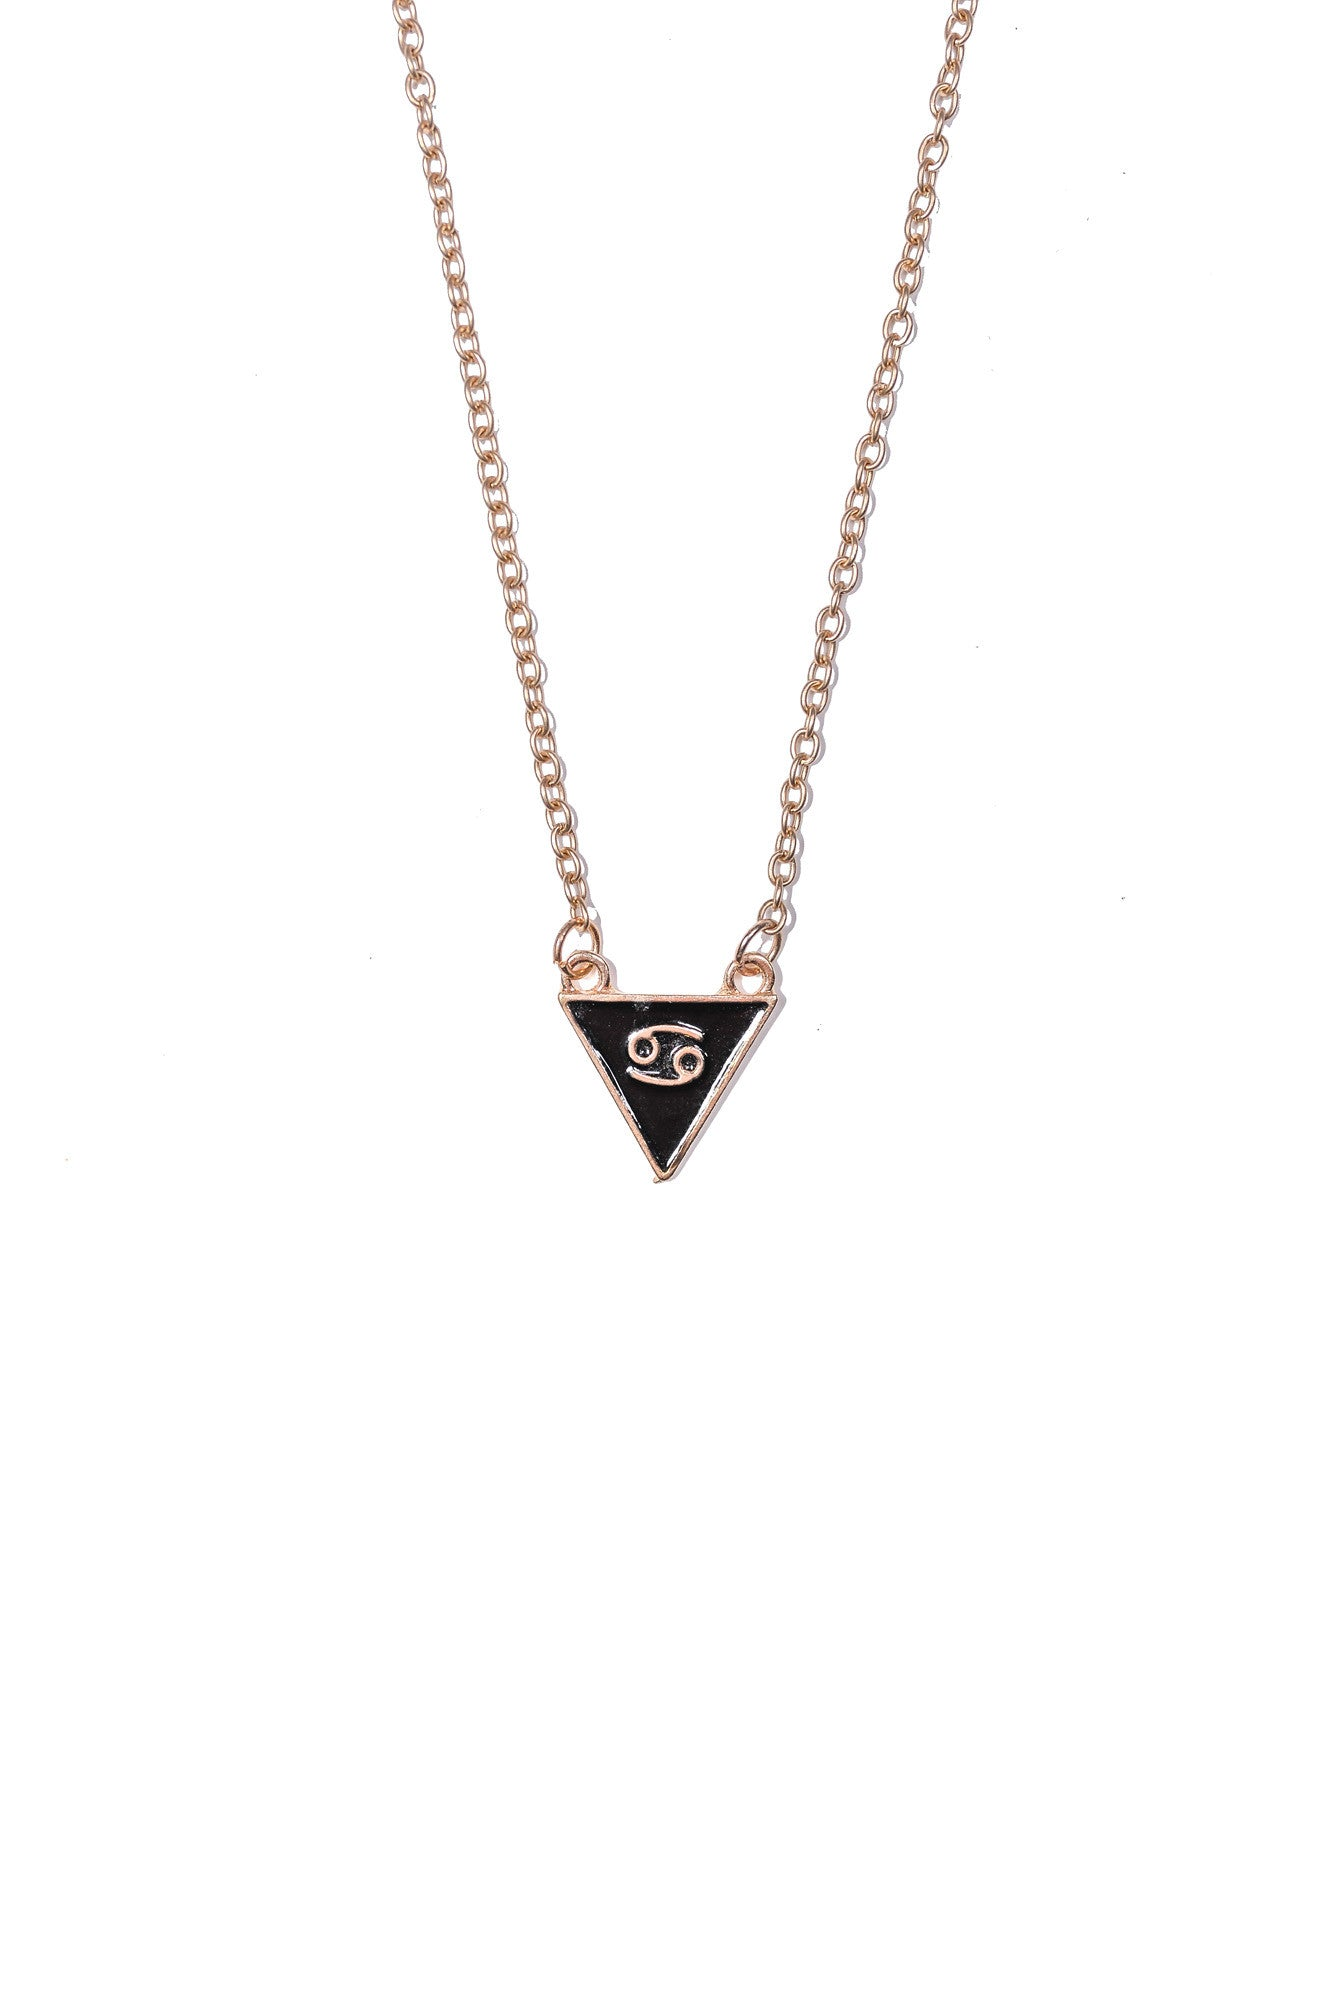 Cancer love by luna cancer triangle necklace buycottarizona